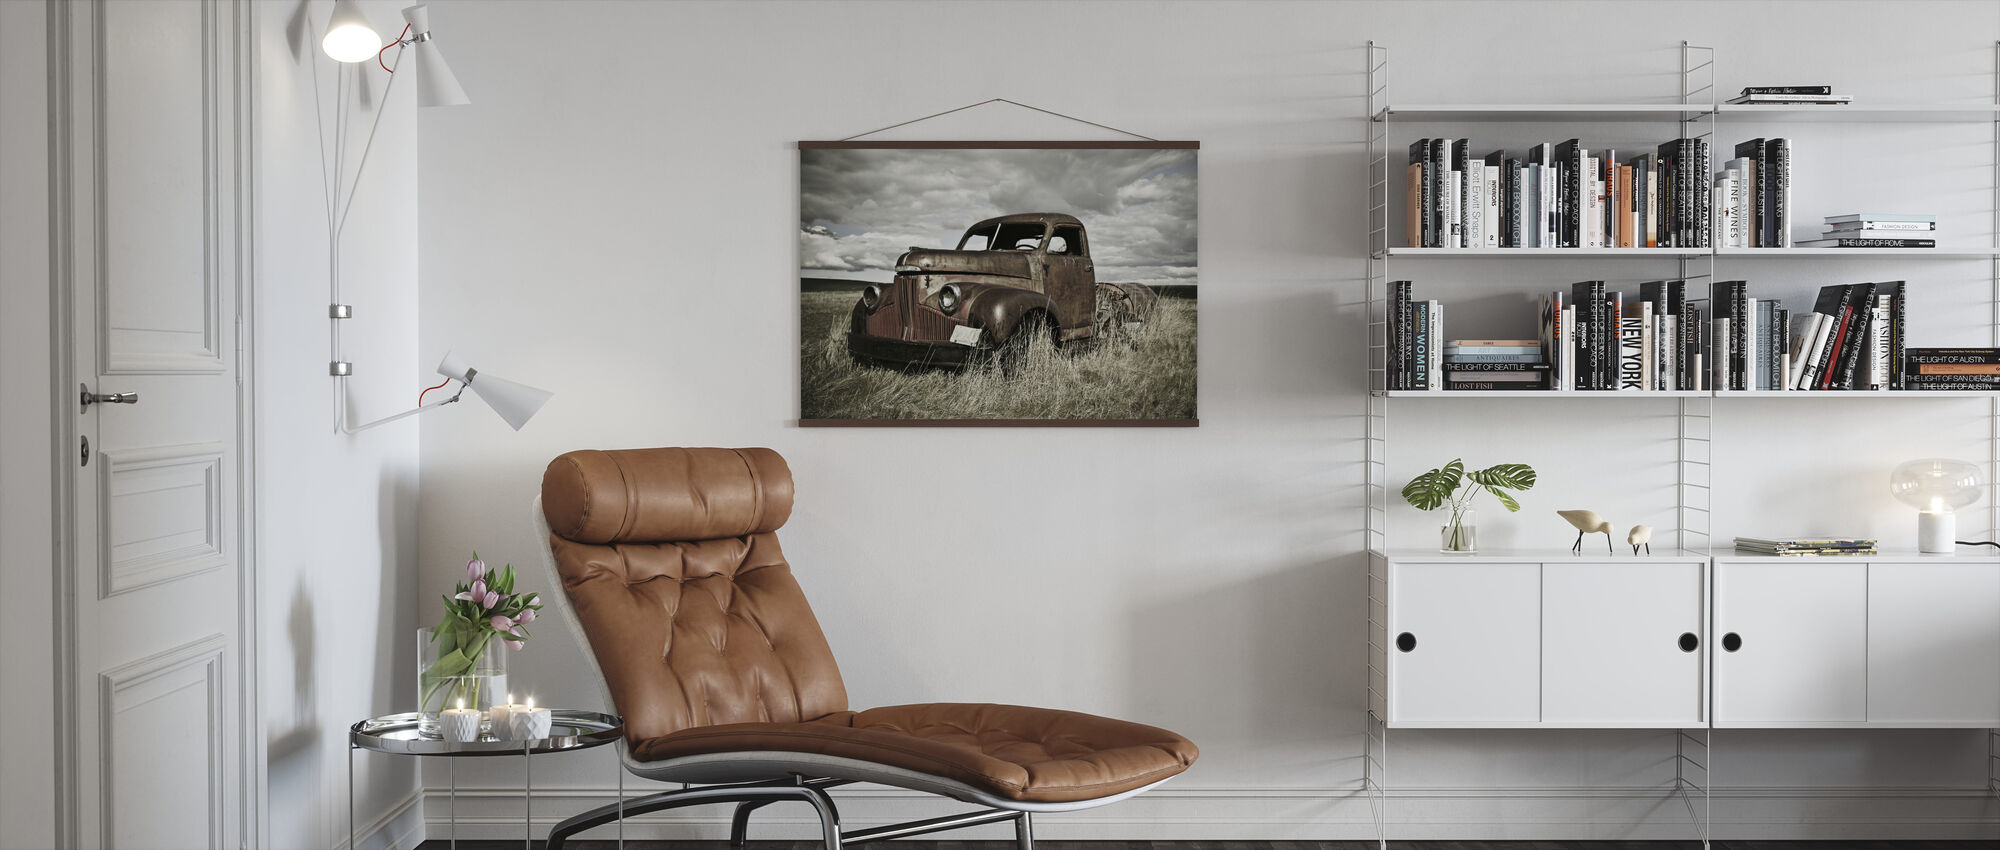 Old Truck Out in the Field - Poster - Living Room